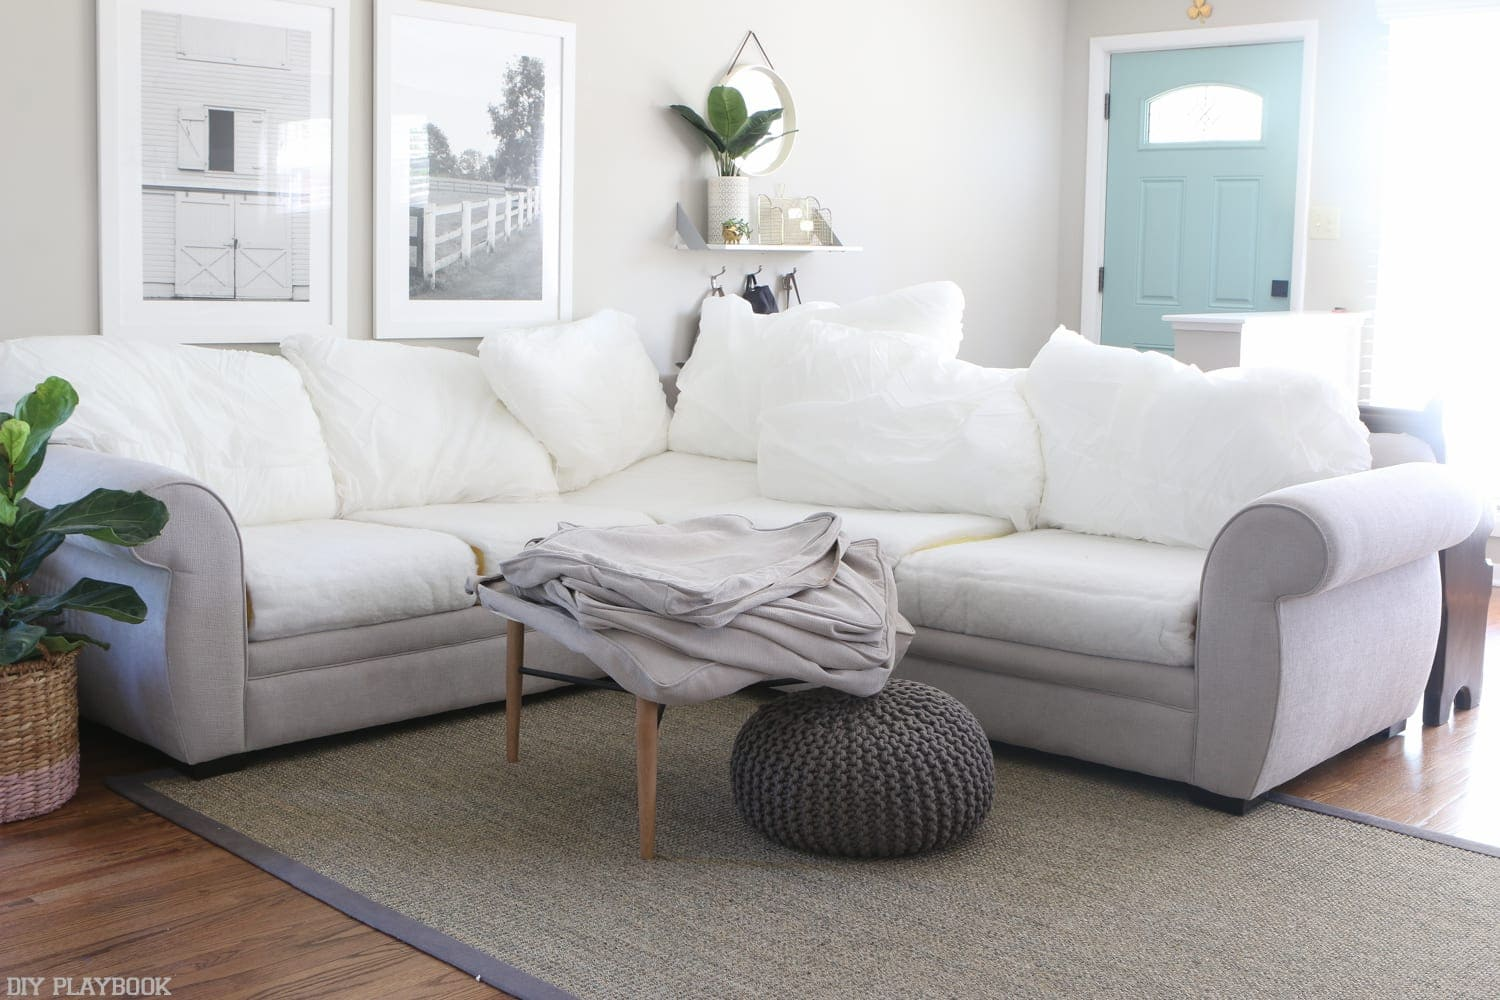 polyester sofa washing machine blue and white fabric how to clean couch cushions in four easy steps